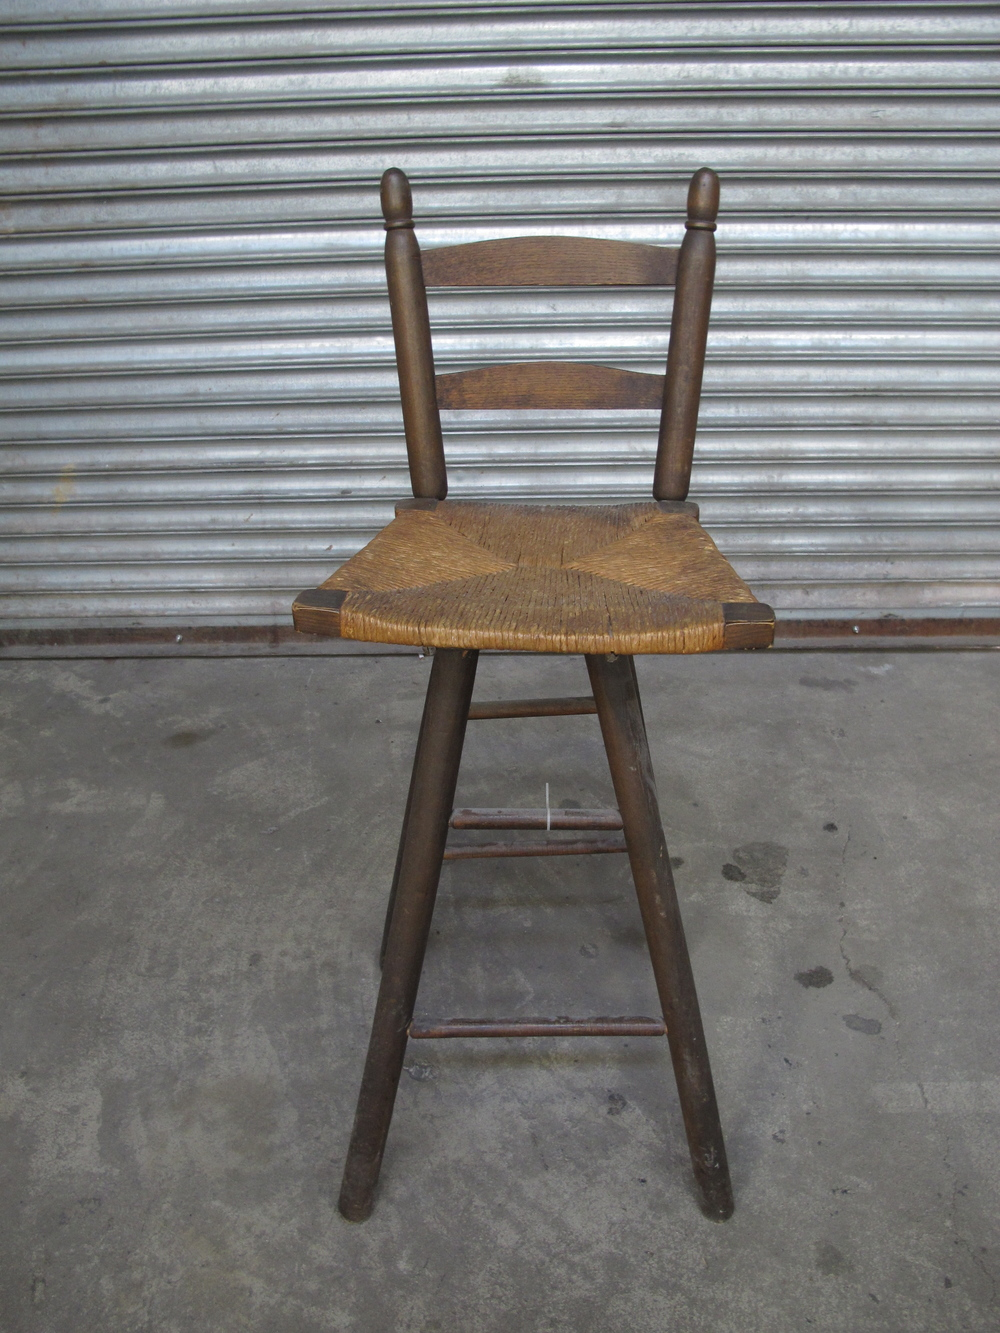 Wood Antique Woven-seat High Chair $25